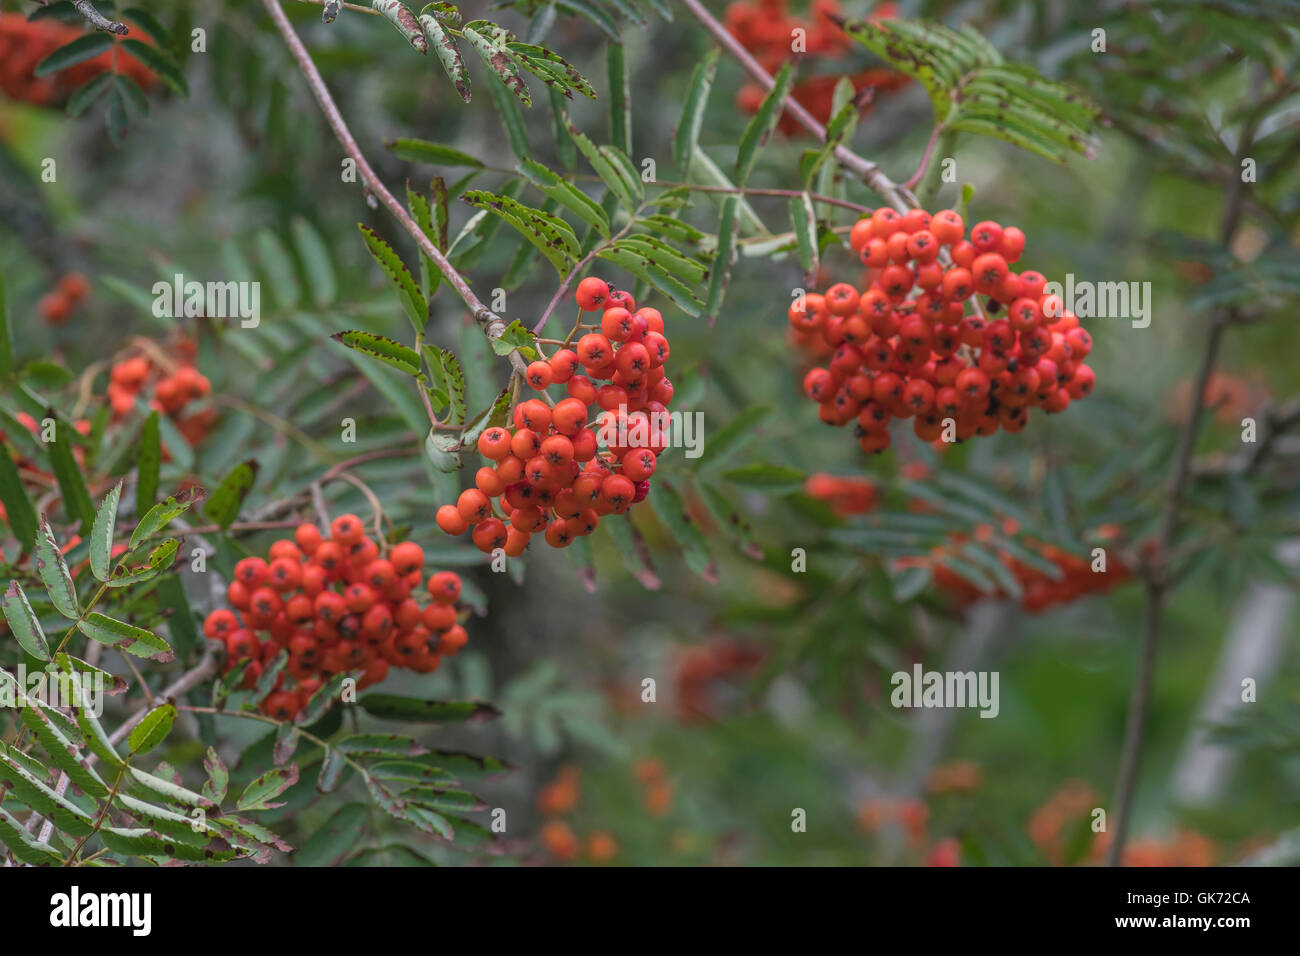 Fruit jam game - Red Berries Of Rowan Mountain Ash Sorbus Aucuparia Used In Making Rowan Jam Or Conserve Often Served With Cooked Game